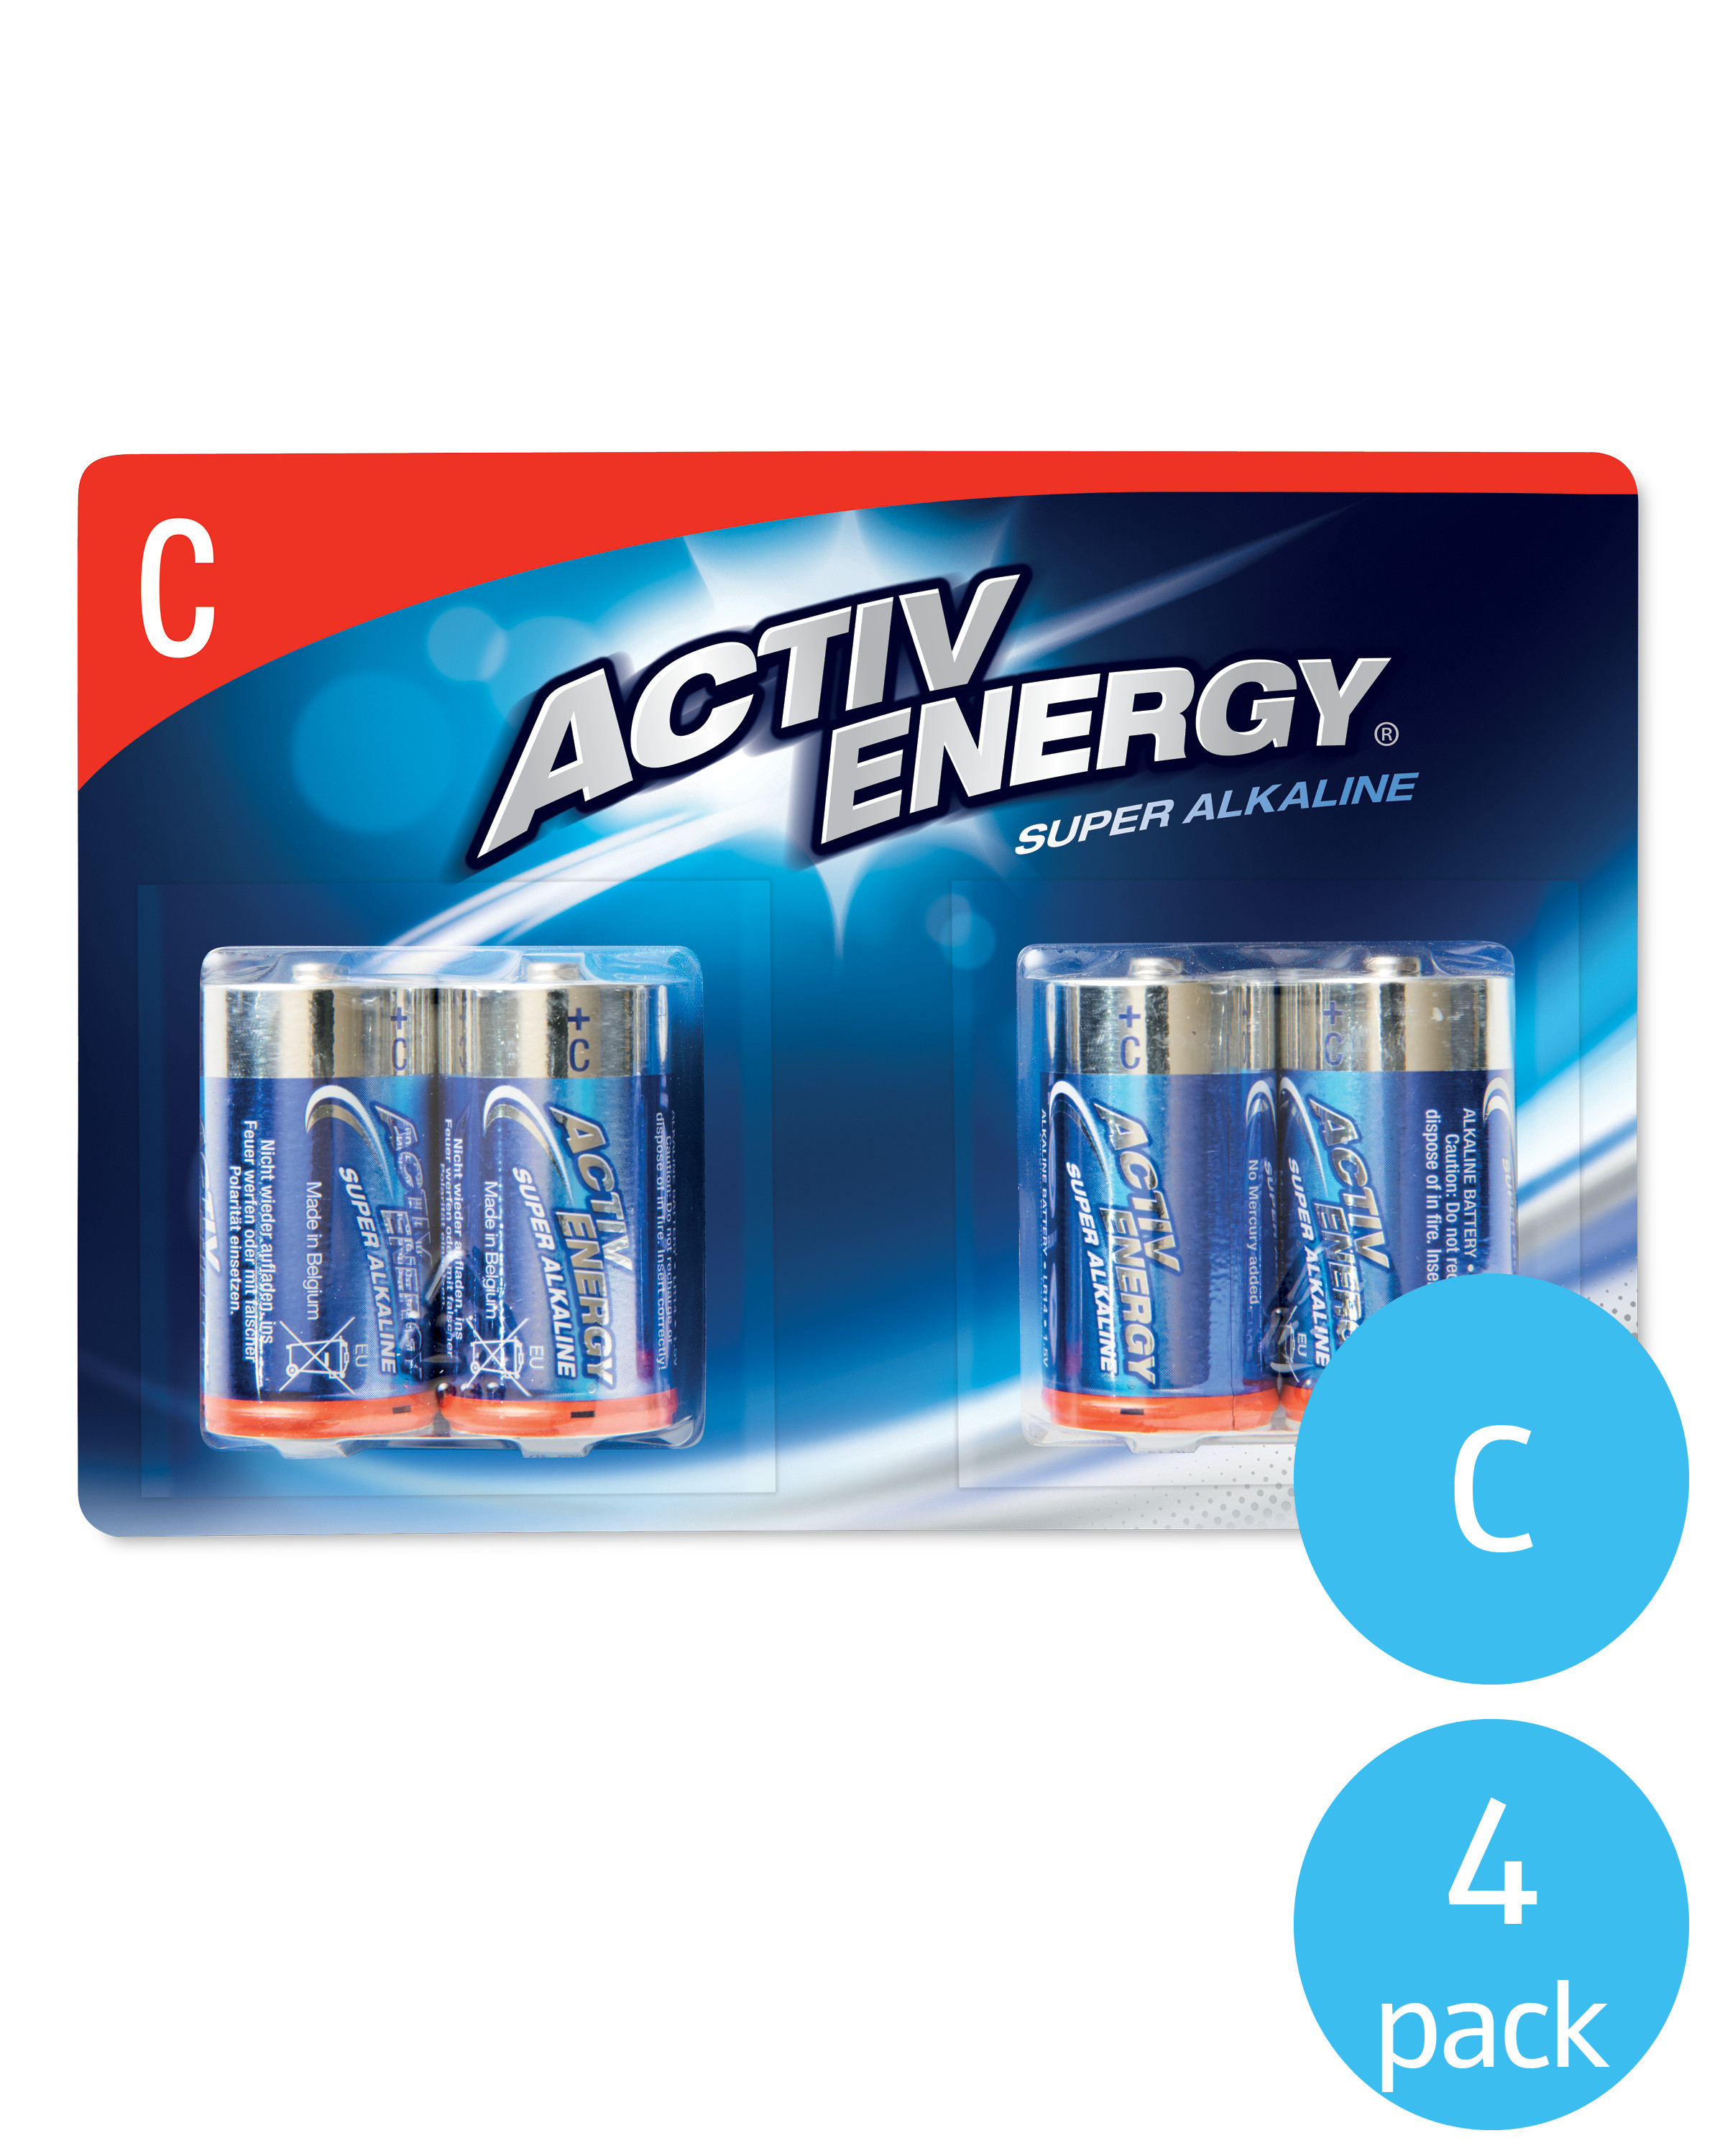 Activ Energy C Batteries Pack of 4